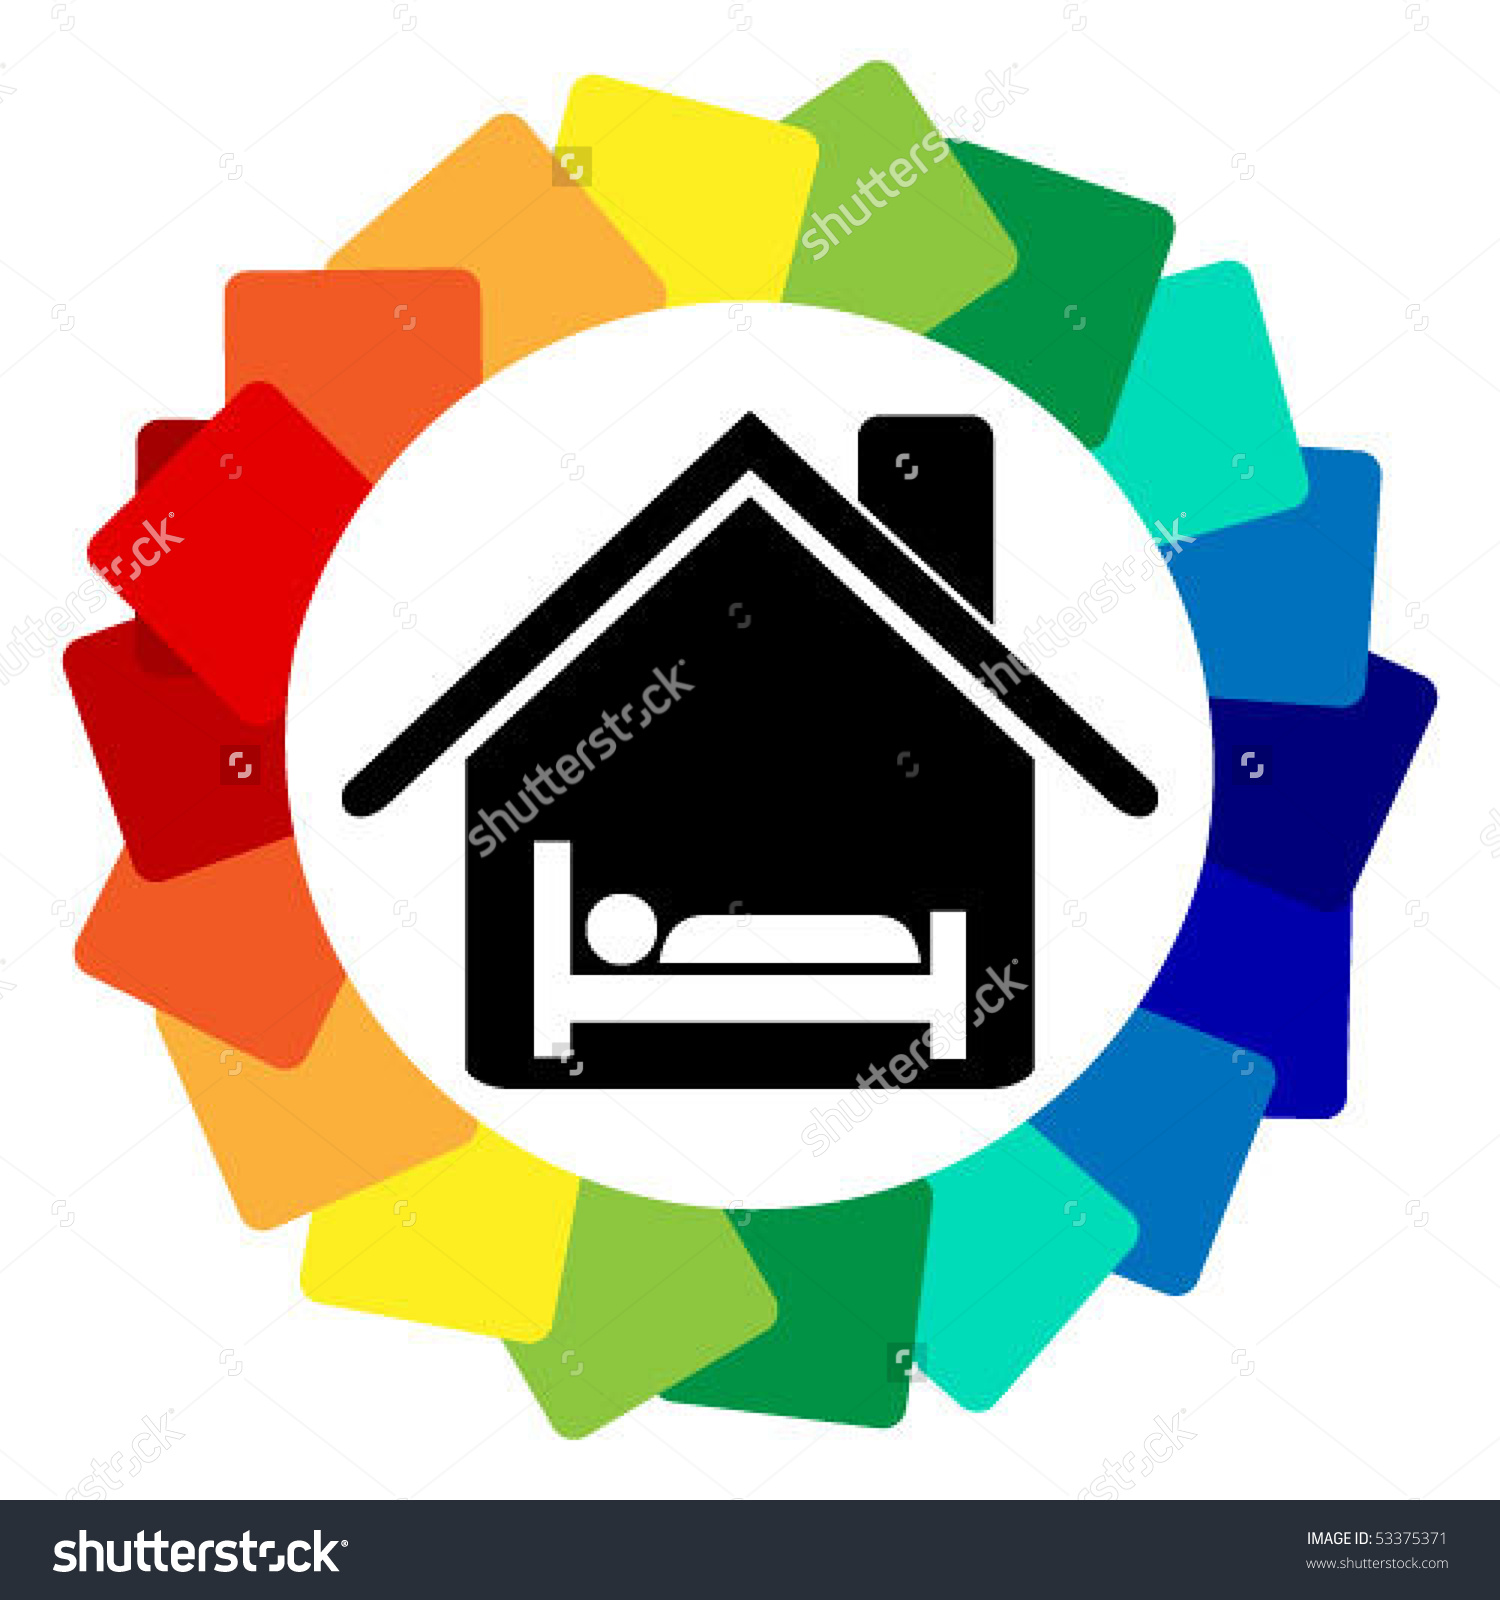 Guest House Design Stock Vector Illustration 53375371 : Shutterstock.